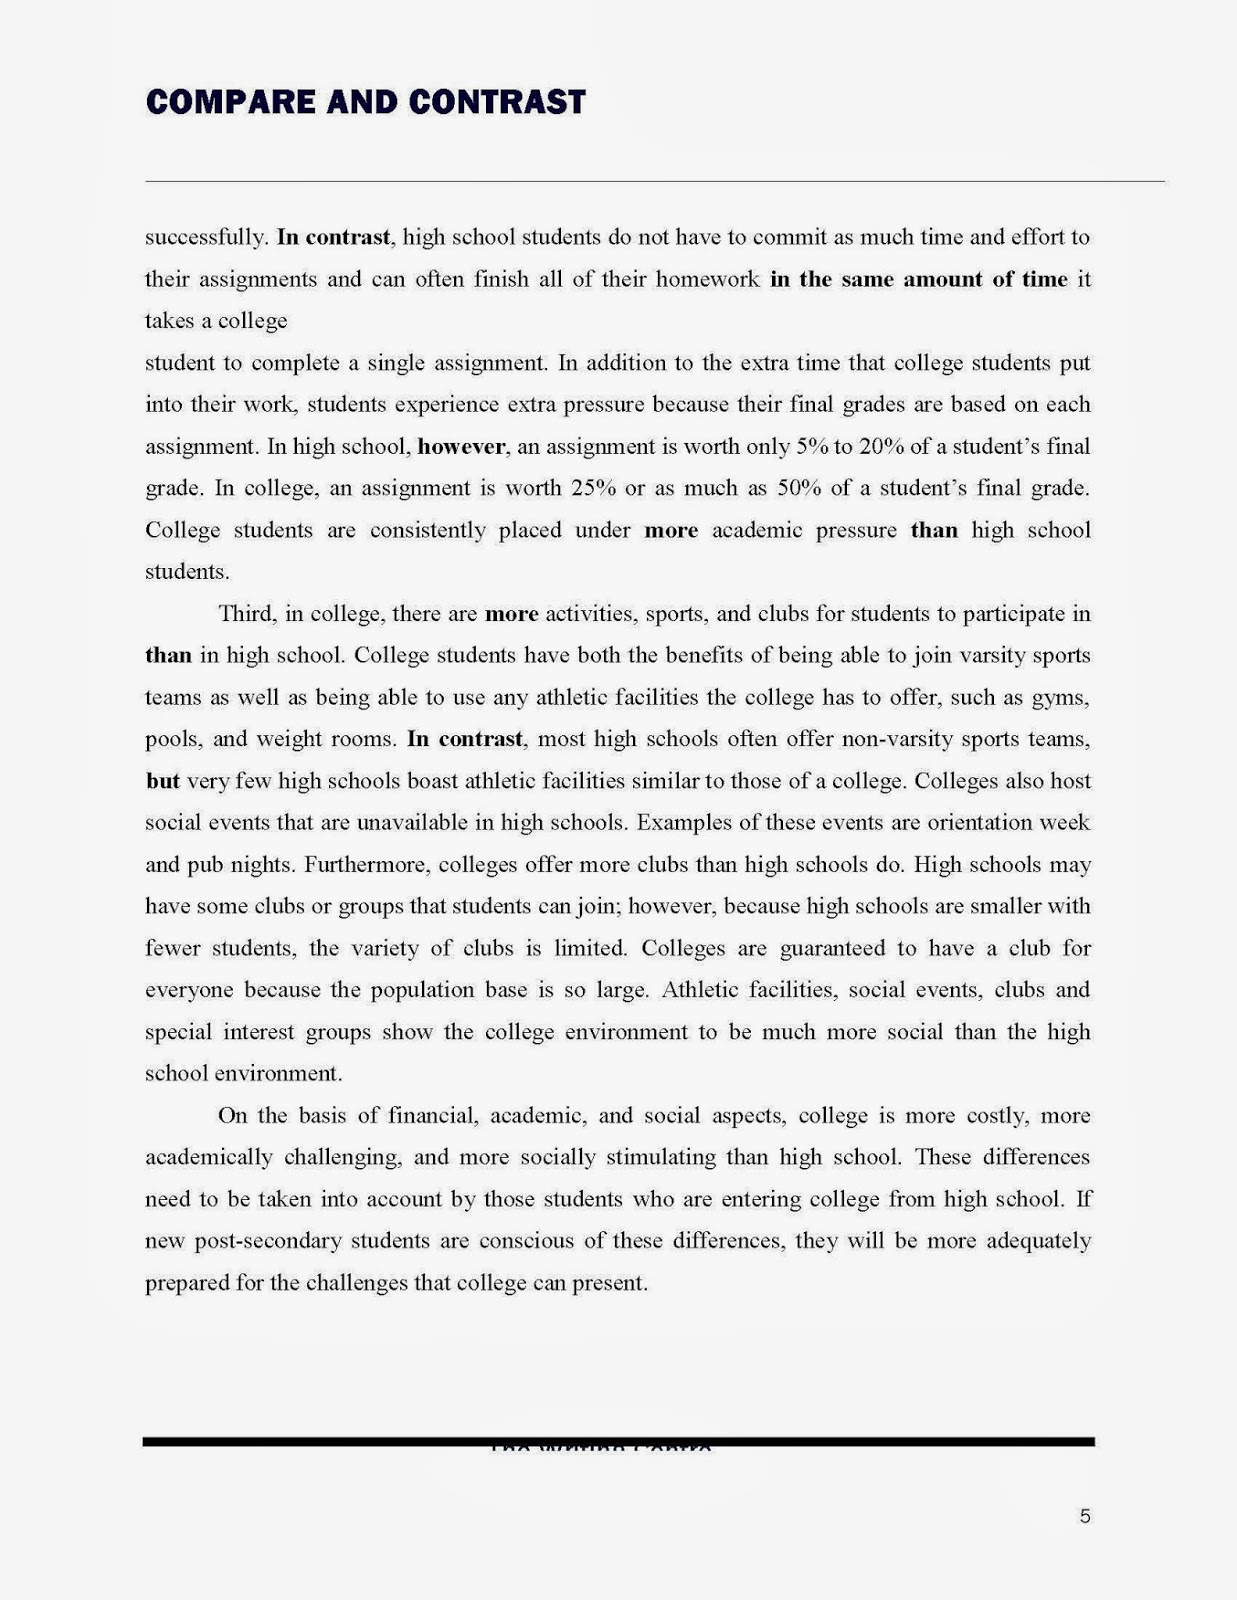 What Is A Good Compare And Contrast Essay Topic  Best Ideas  Essay On The Giver Essay On The Giver By Lois Lowry Essay On The Book The